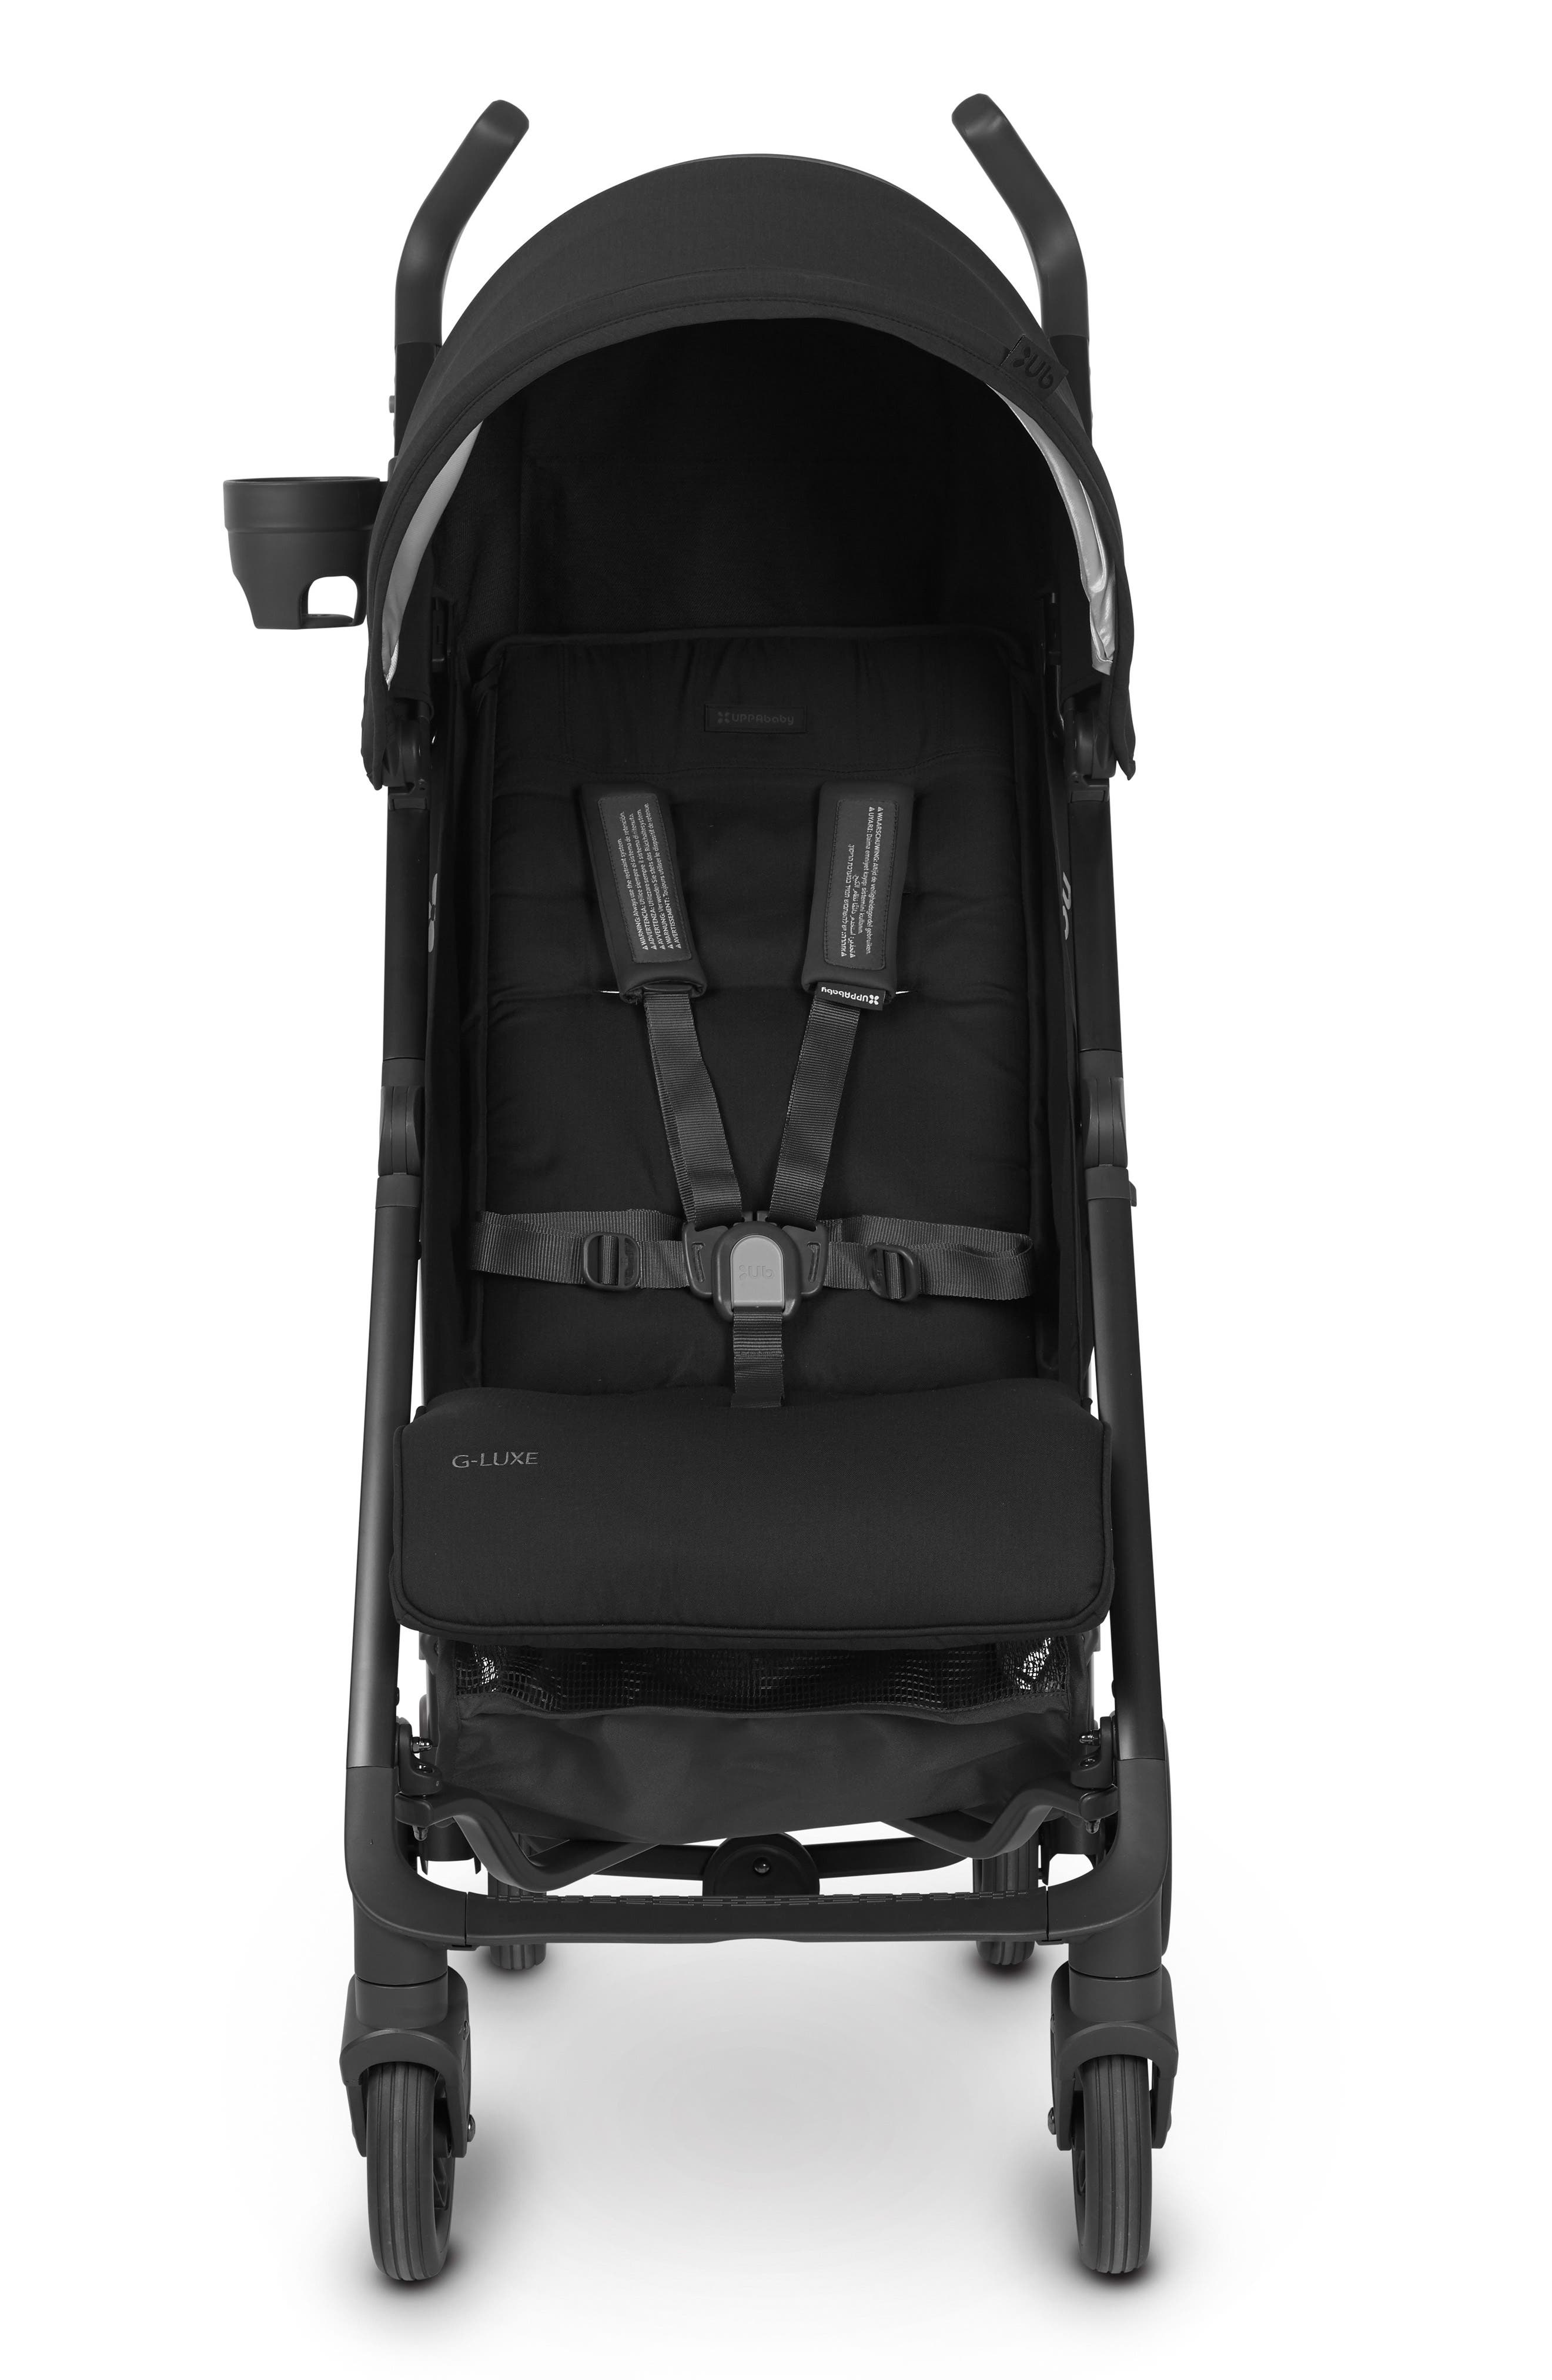 G-LUXE 2018 Reclining Umbrella Stroller,                             Alternate thumbnail 4, color,                             JAKE BLACK/ CARBON